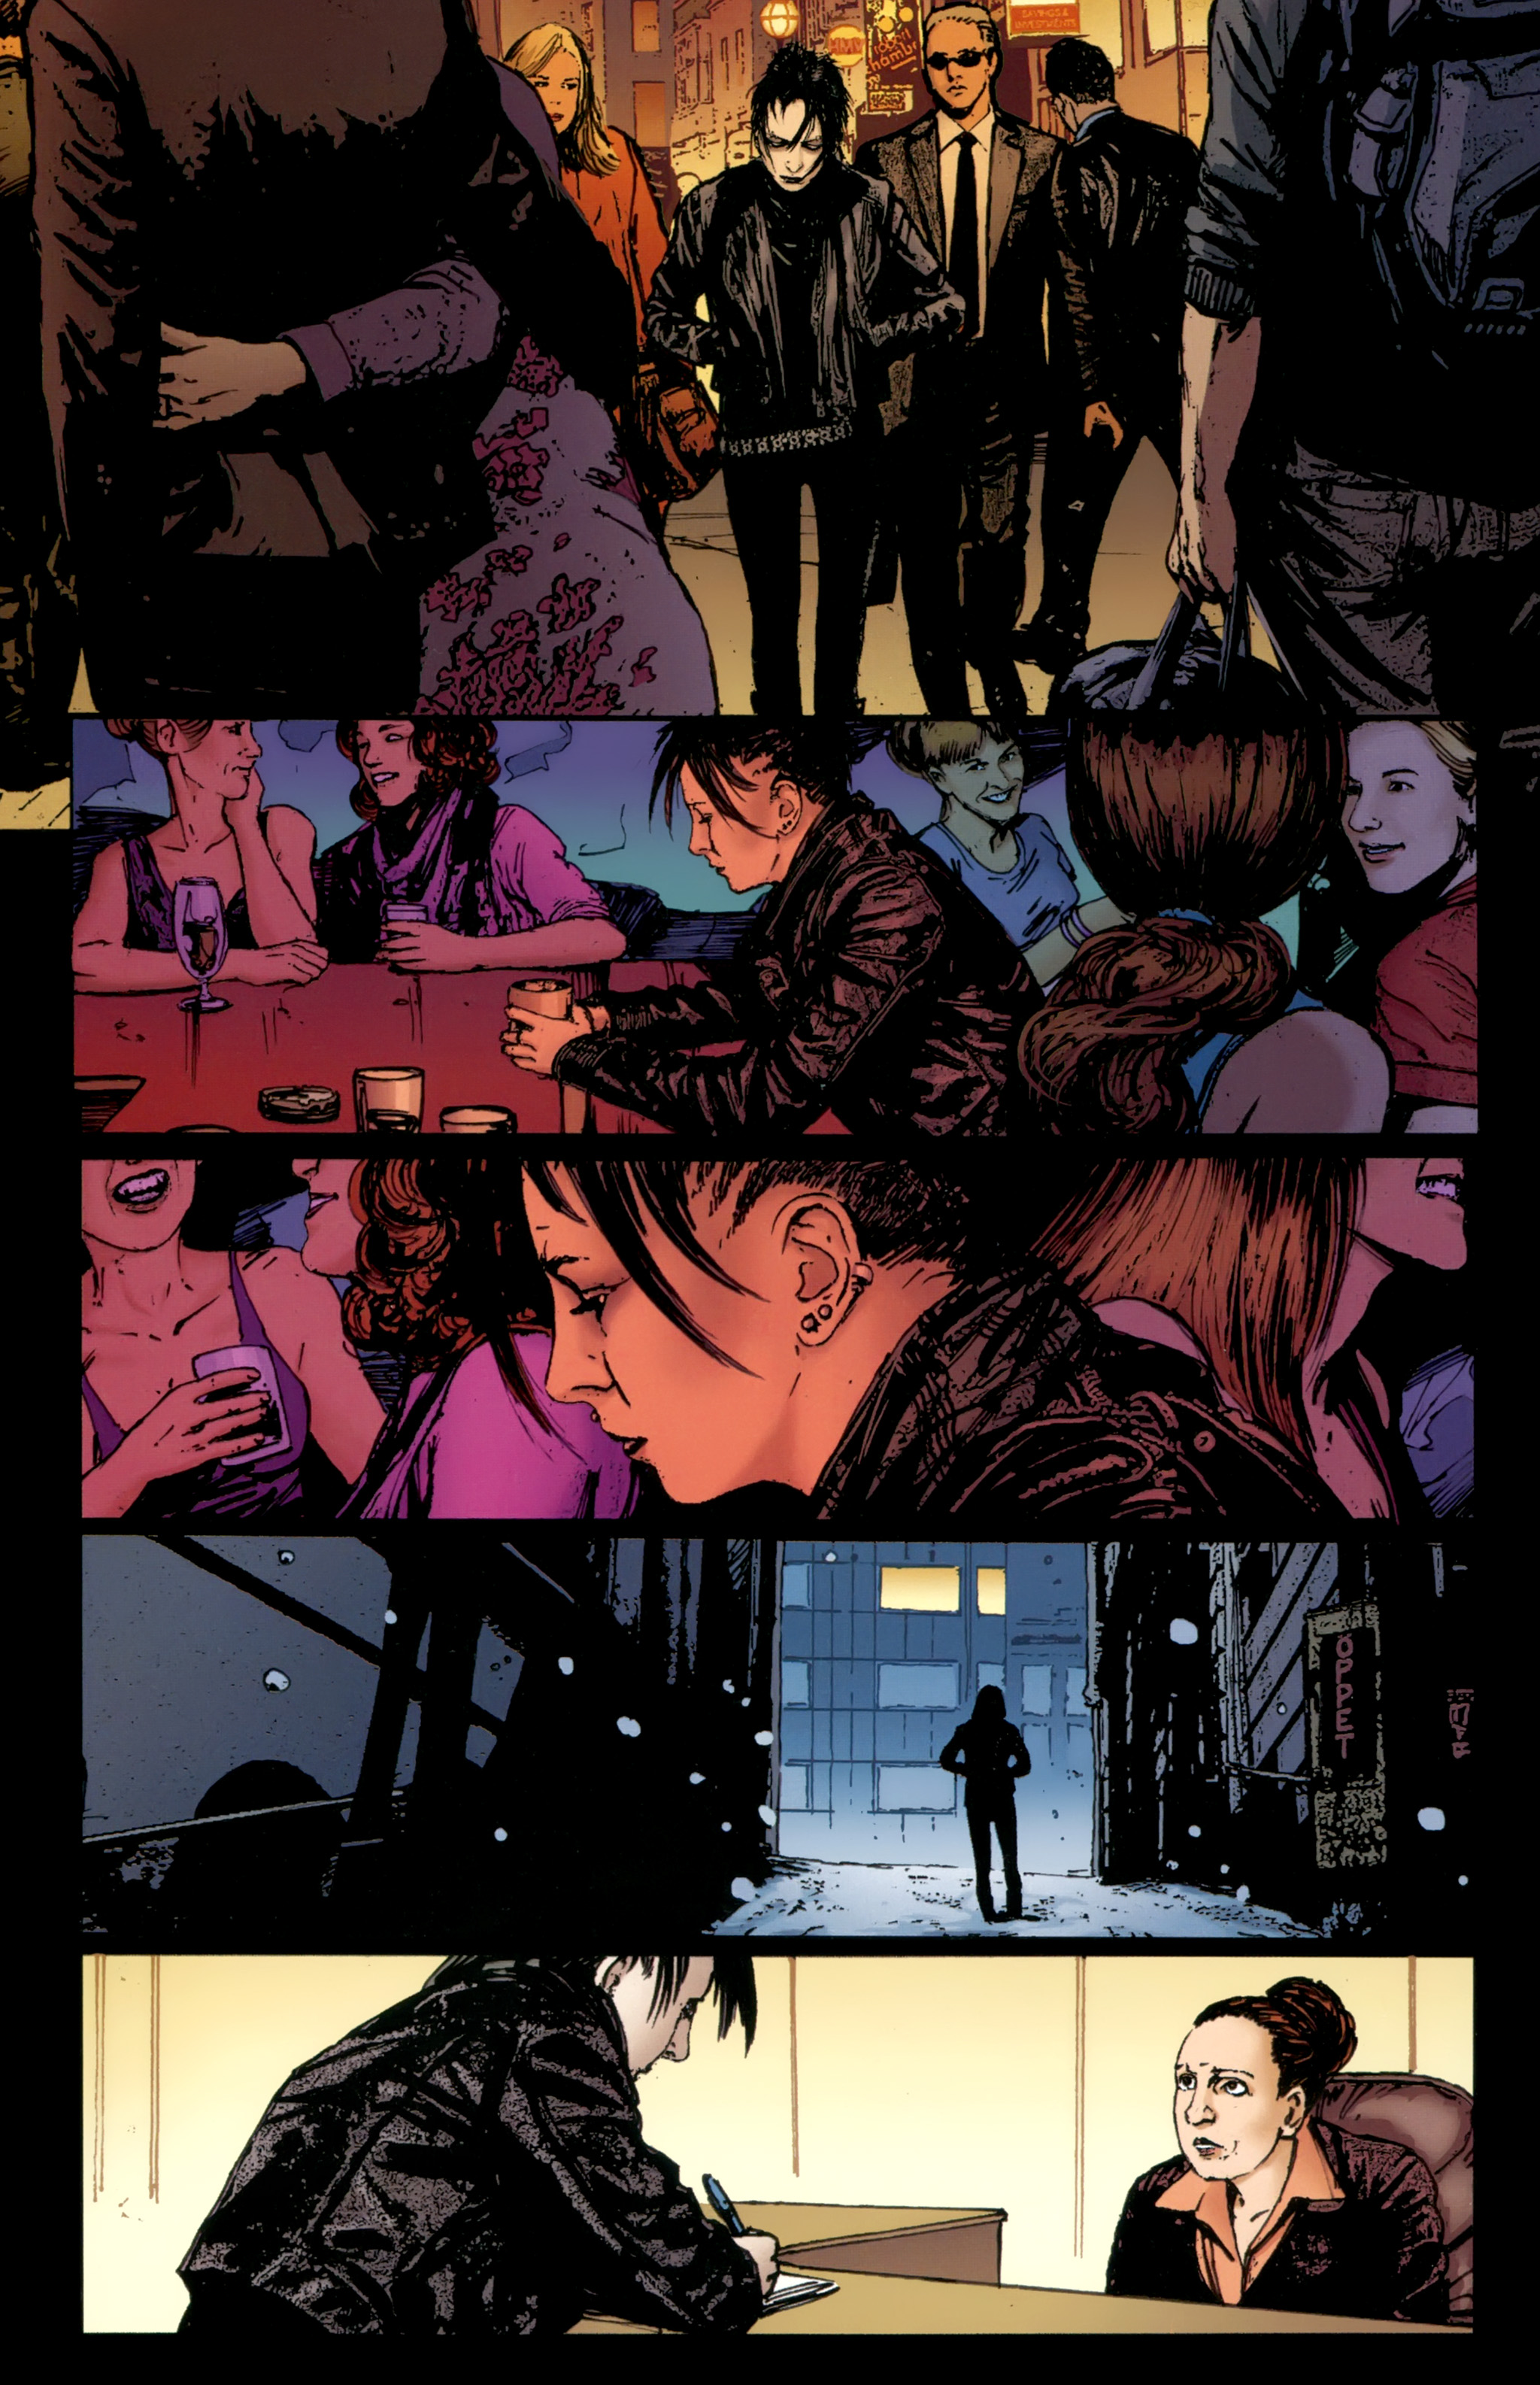 Read online The Girl With the Dragon Tattoo comic -  Issue # TPB 2 - 154